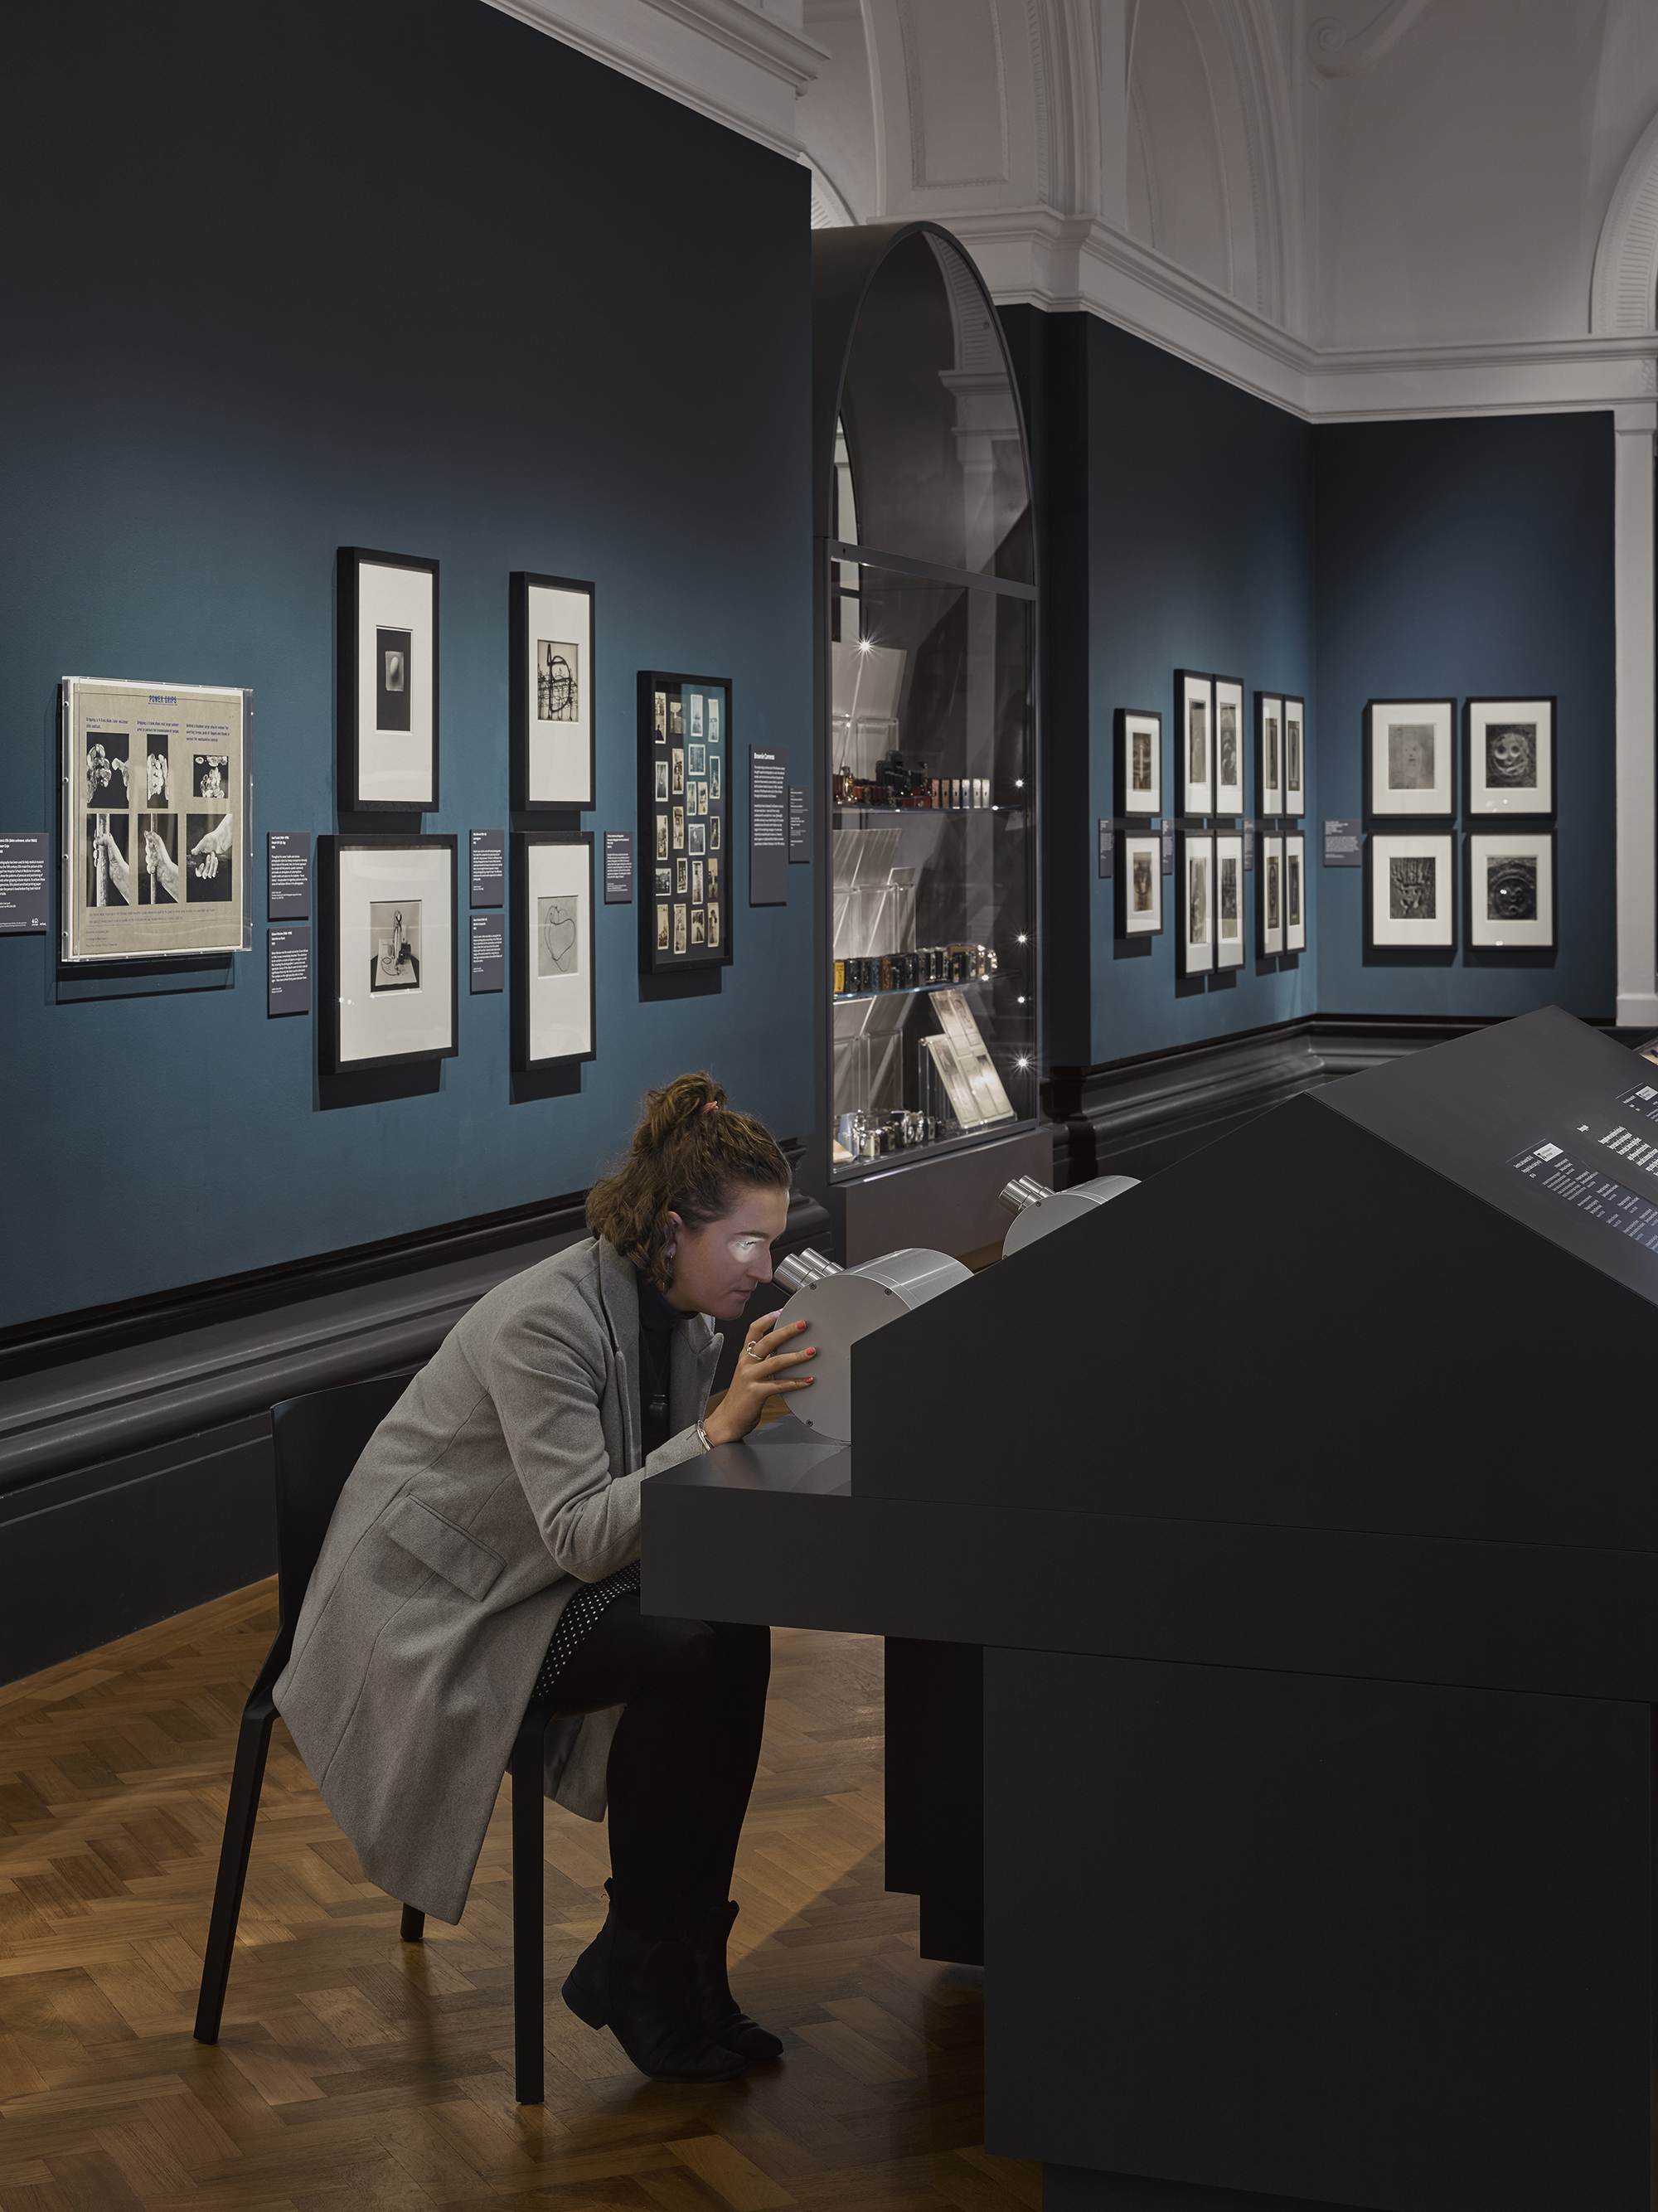 V&A Photography Centre – interactive stereograph displays, The Bern and Ronny Schwartz Gallery © Will Pryce